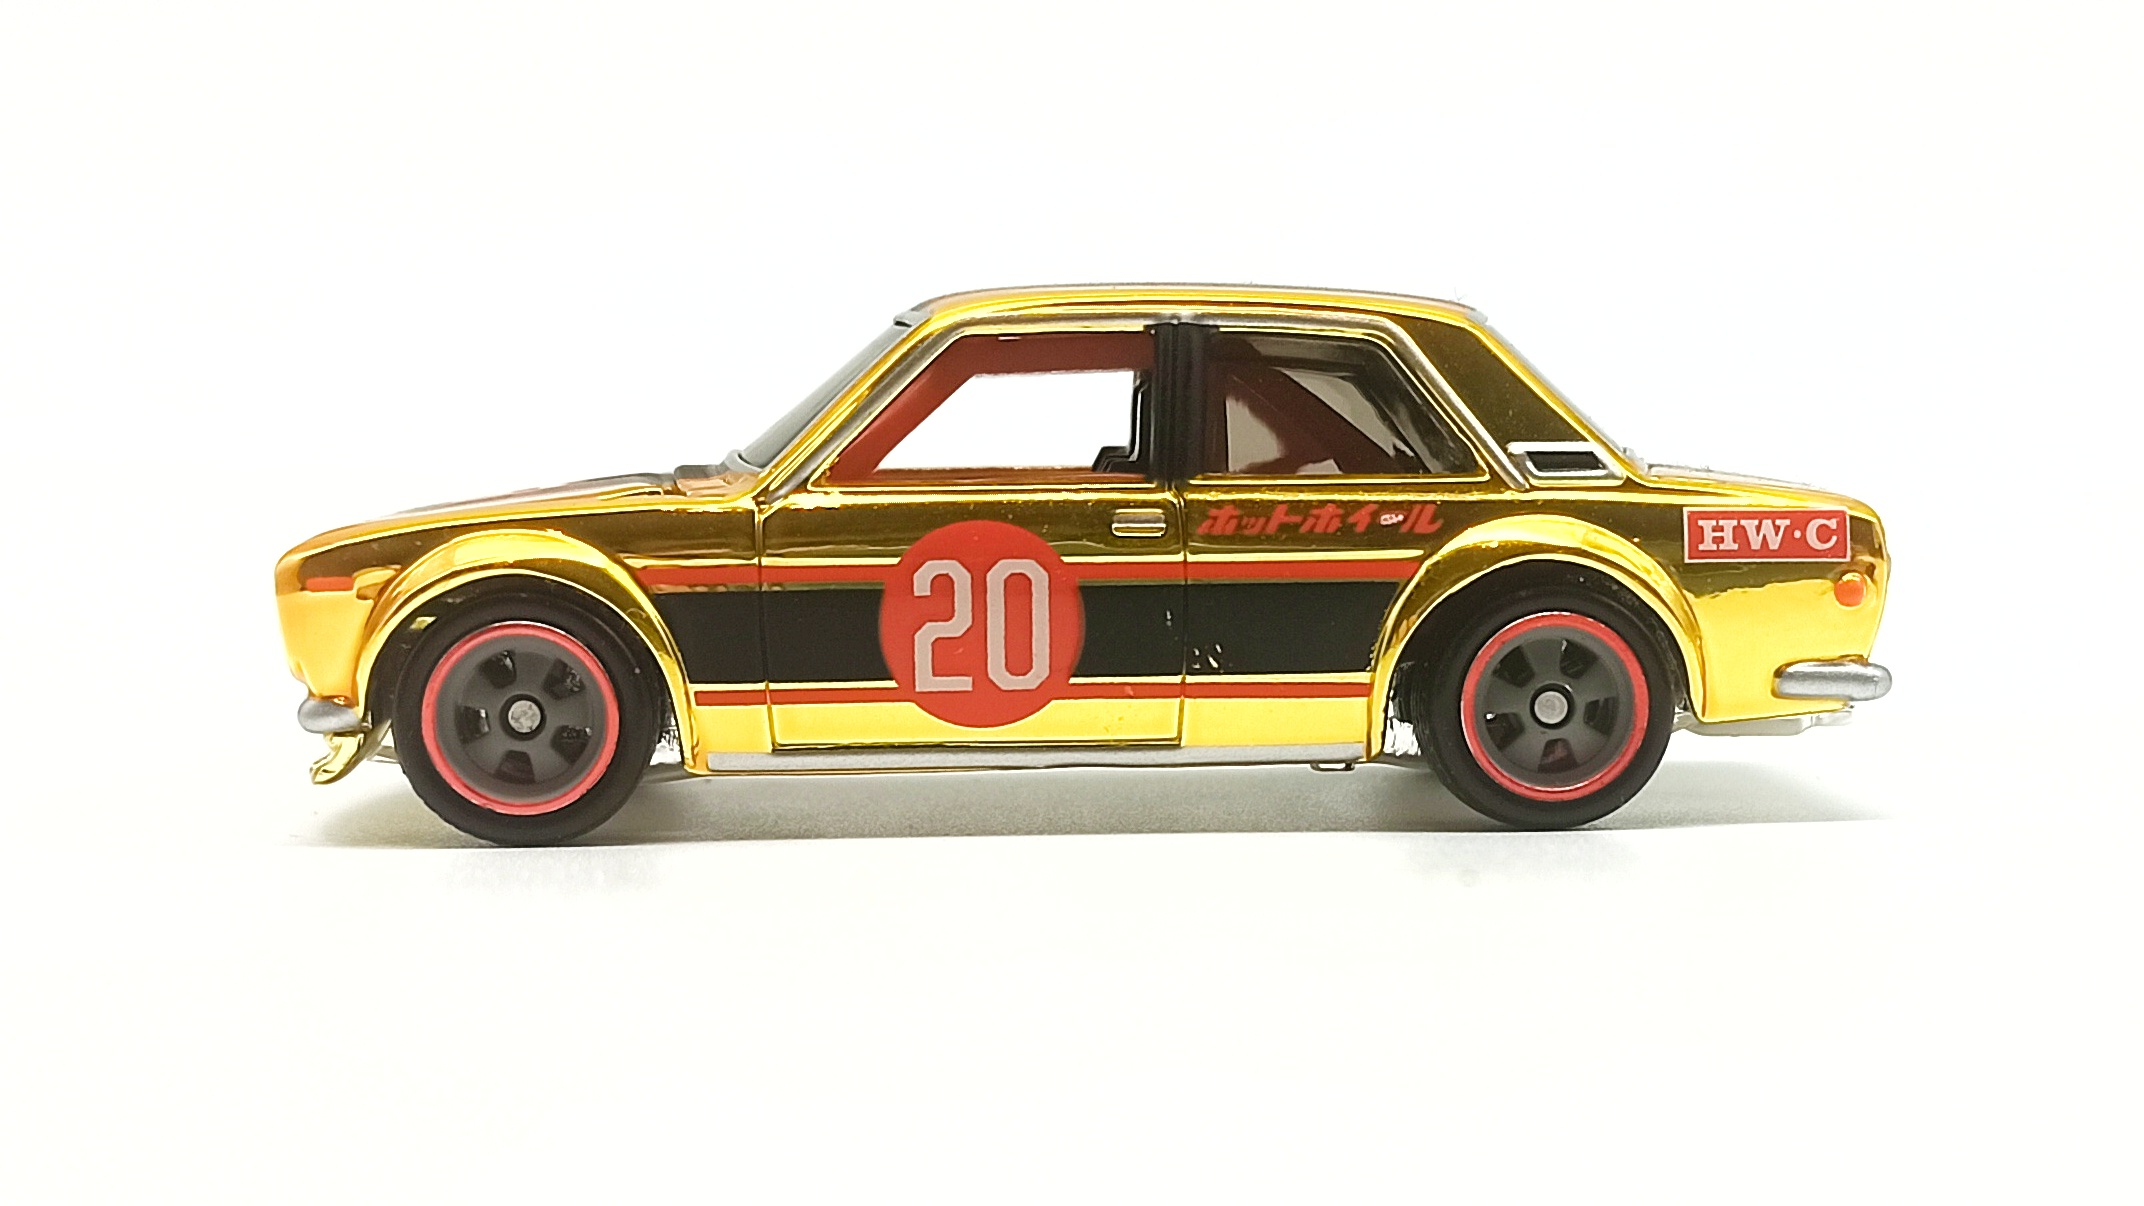 Hot Wheels Datsun Bluebird 510 (DTH32) 2020 RLC Exclusive (1 of 15.000) spectraflame bright yellow gold side view